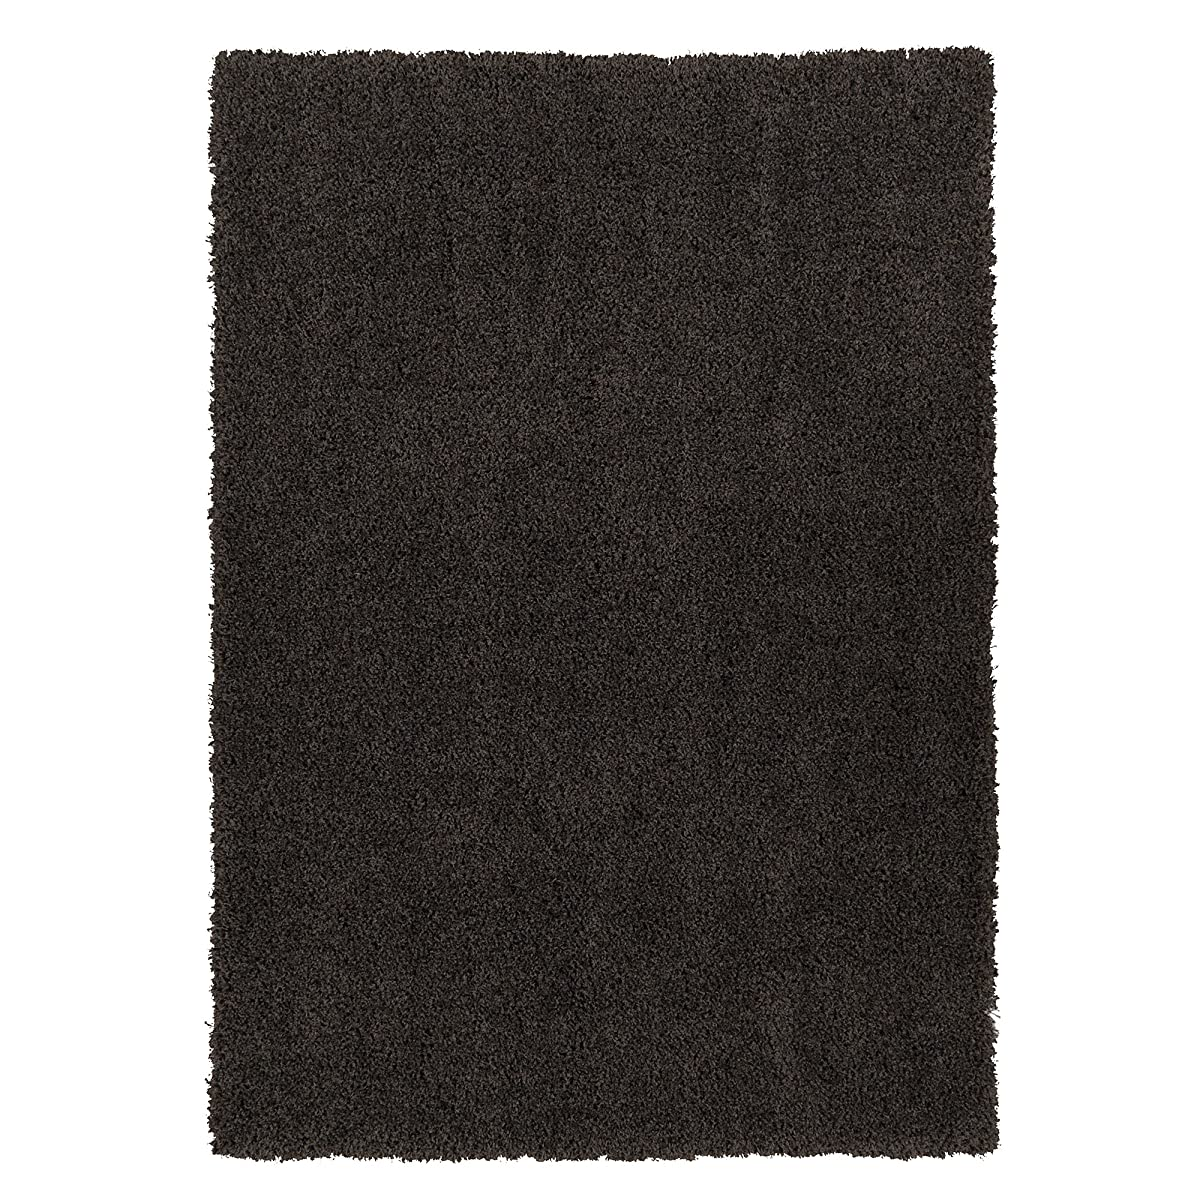 Ottomanson Soft Cozy Color Solid Shag Area Rug Contemporary Living and Bedroom Soft Shag Area Rug, Dark Grey, 710 L x 910 W